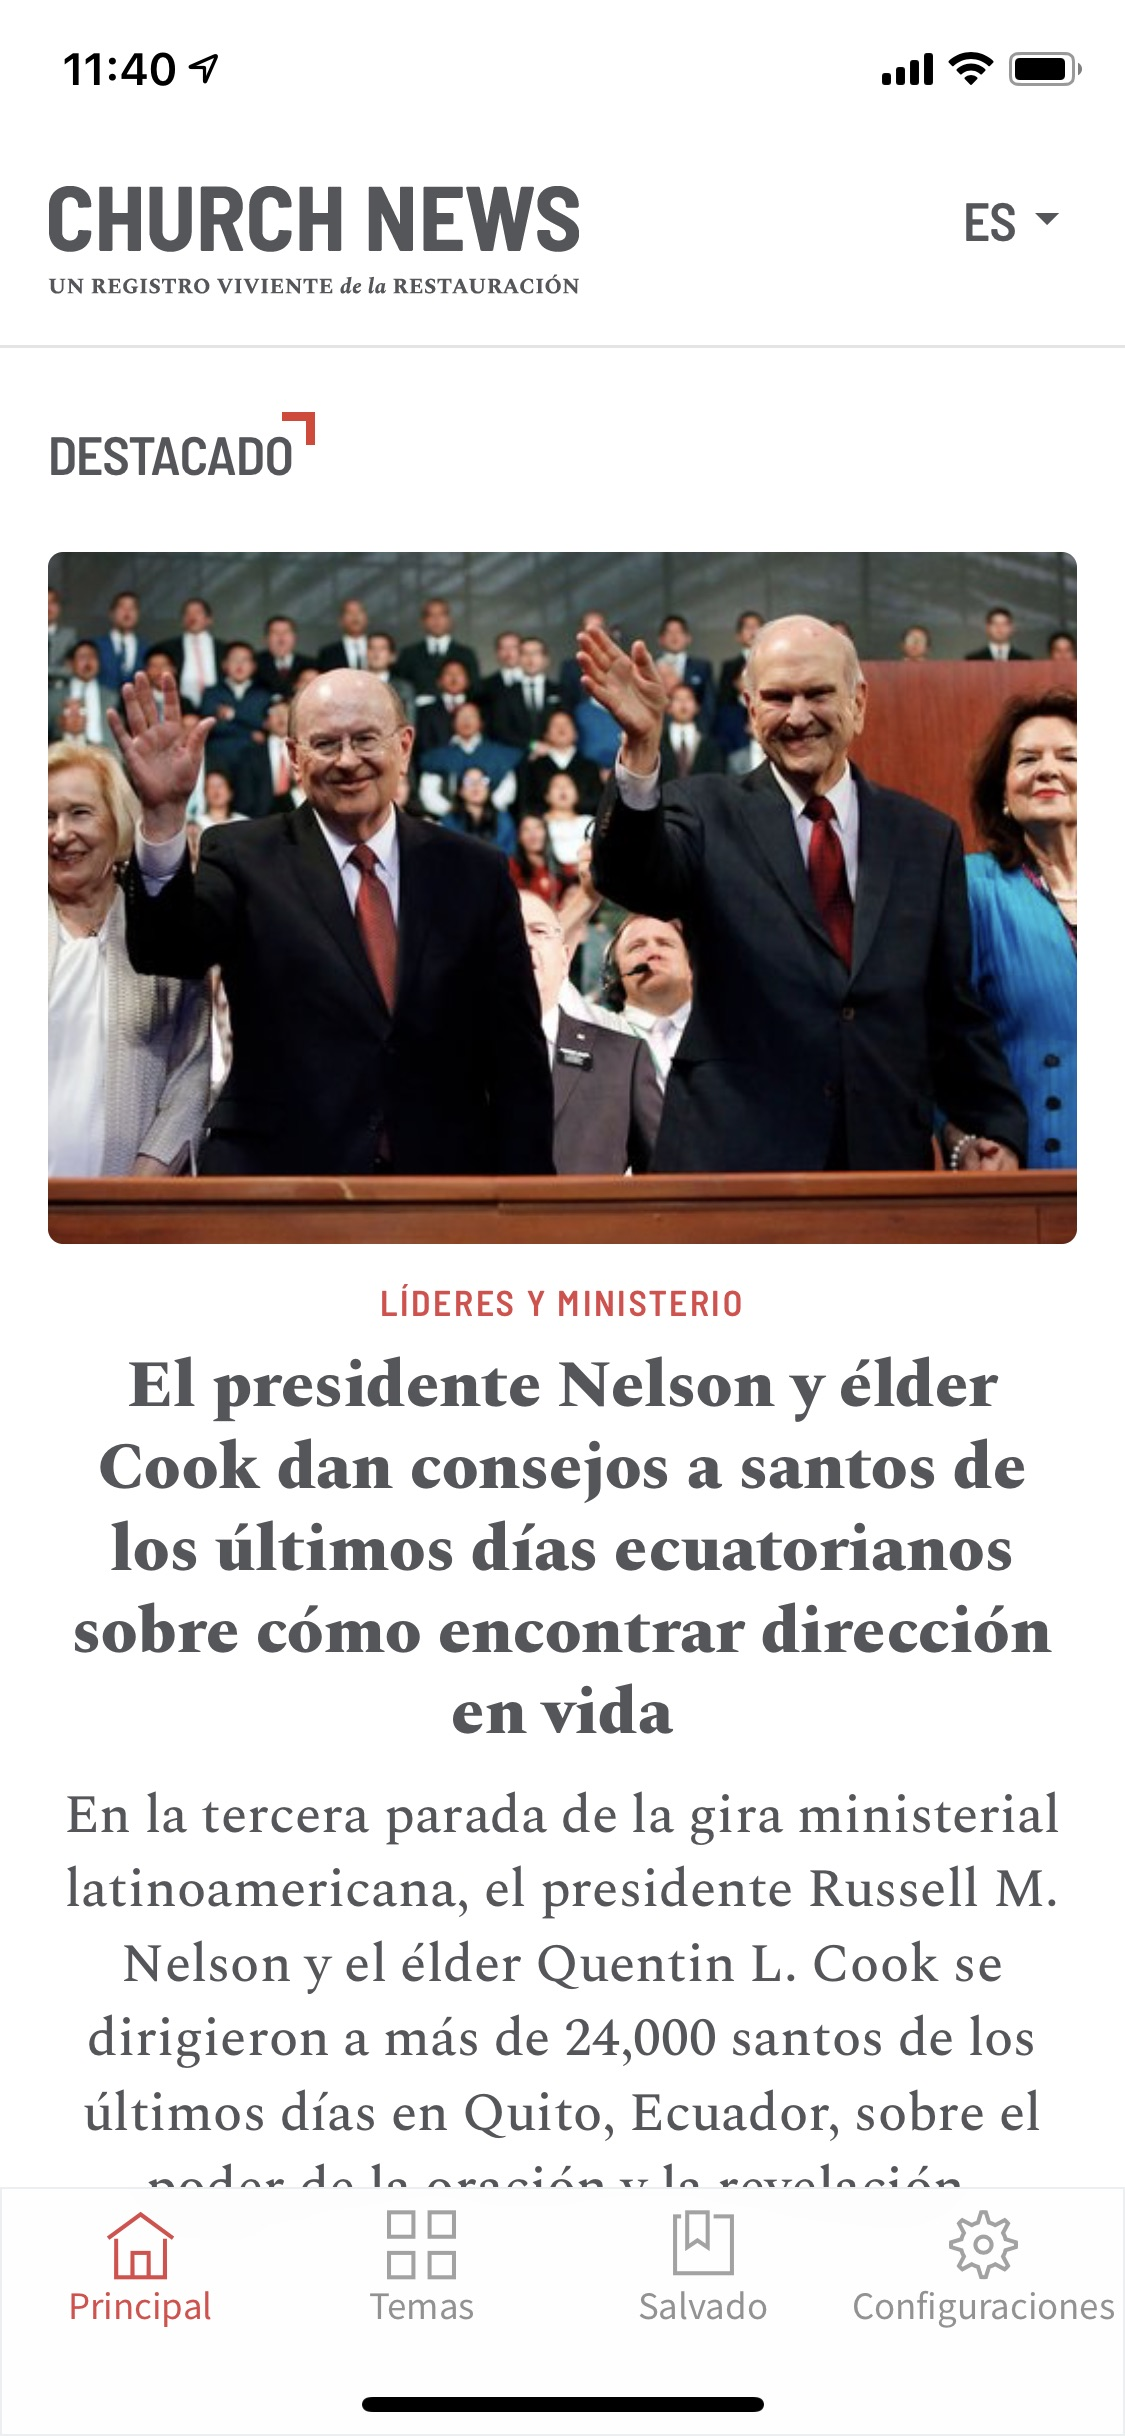 This is a screenshot of the Spanish version of the Church News app.